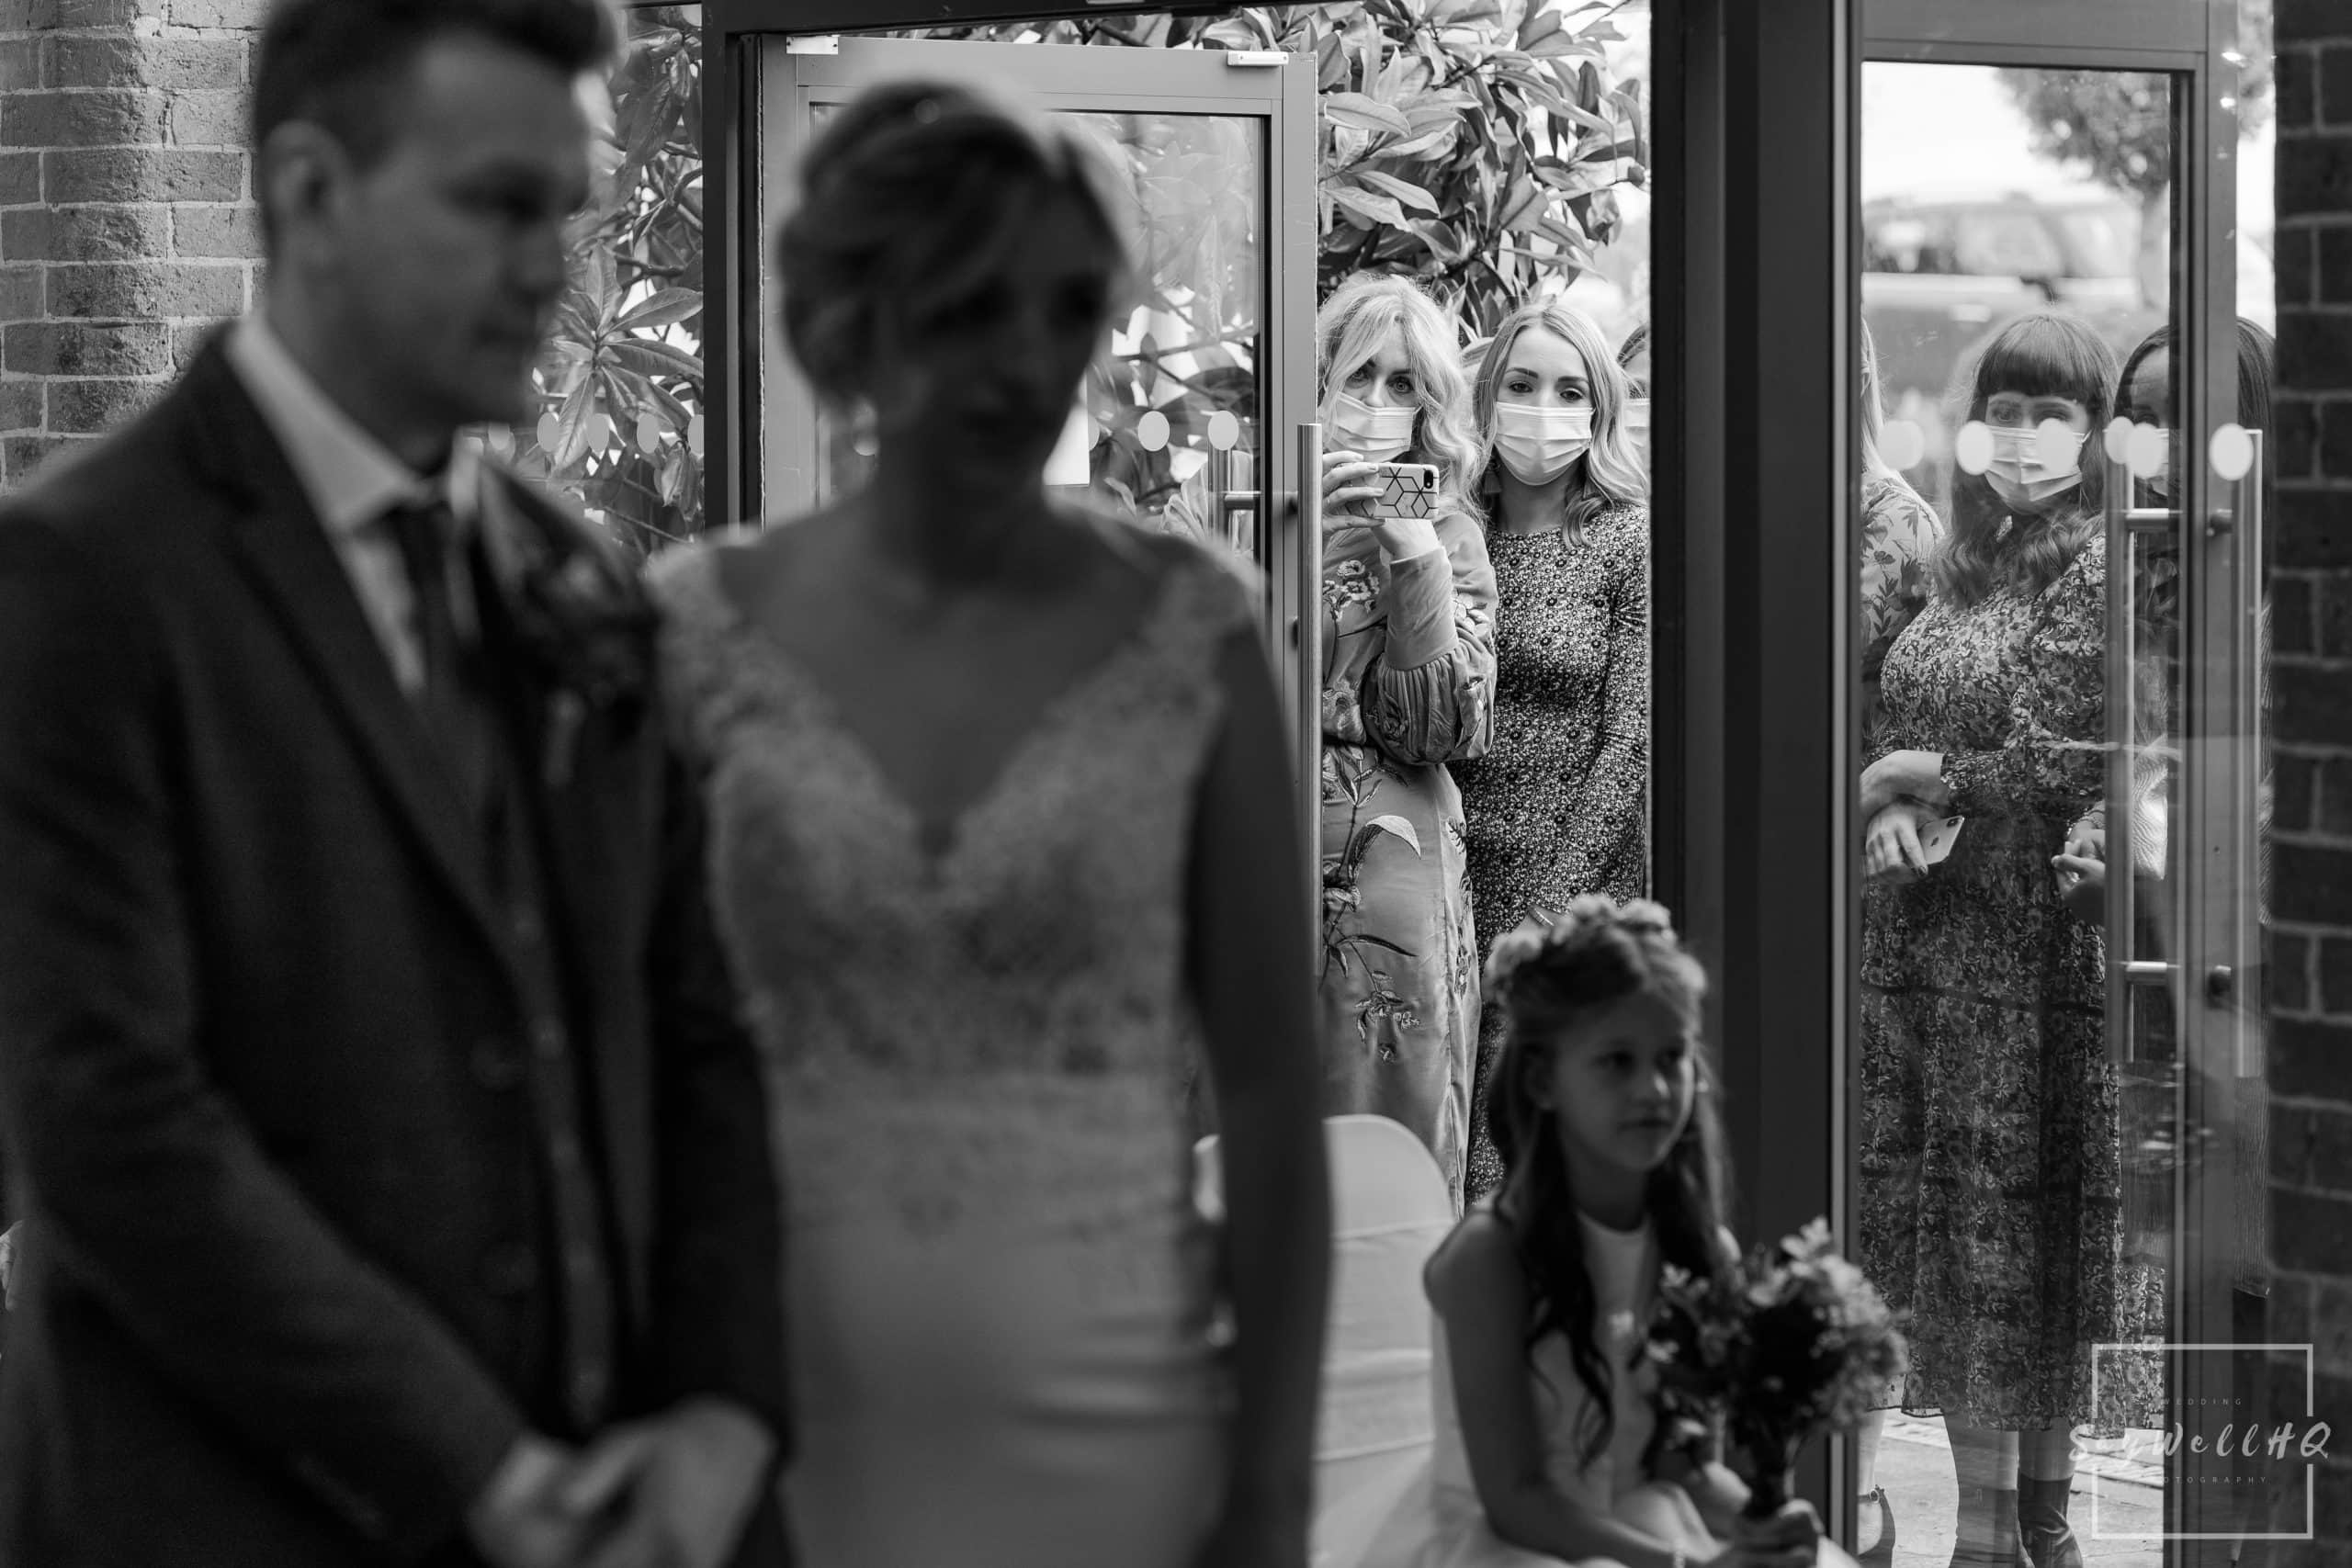 Friends of the bride watching the wedding ceremony through the outside doors due to the covid 19 wedding restrictions